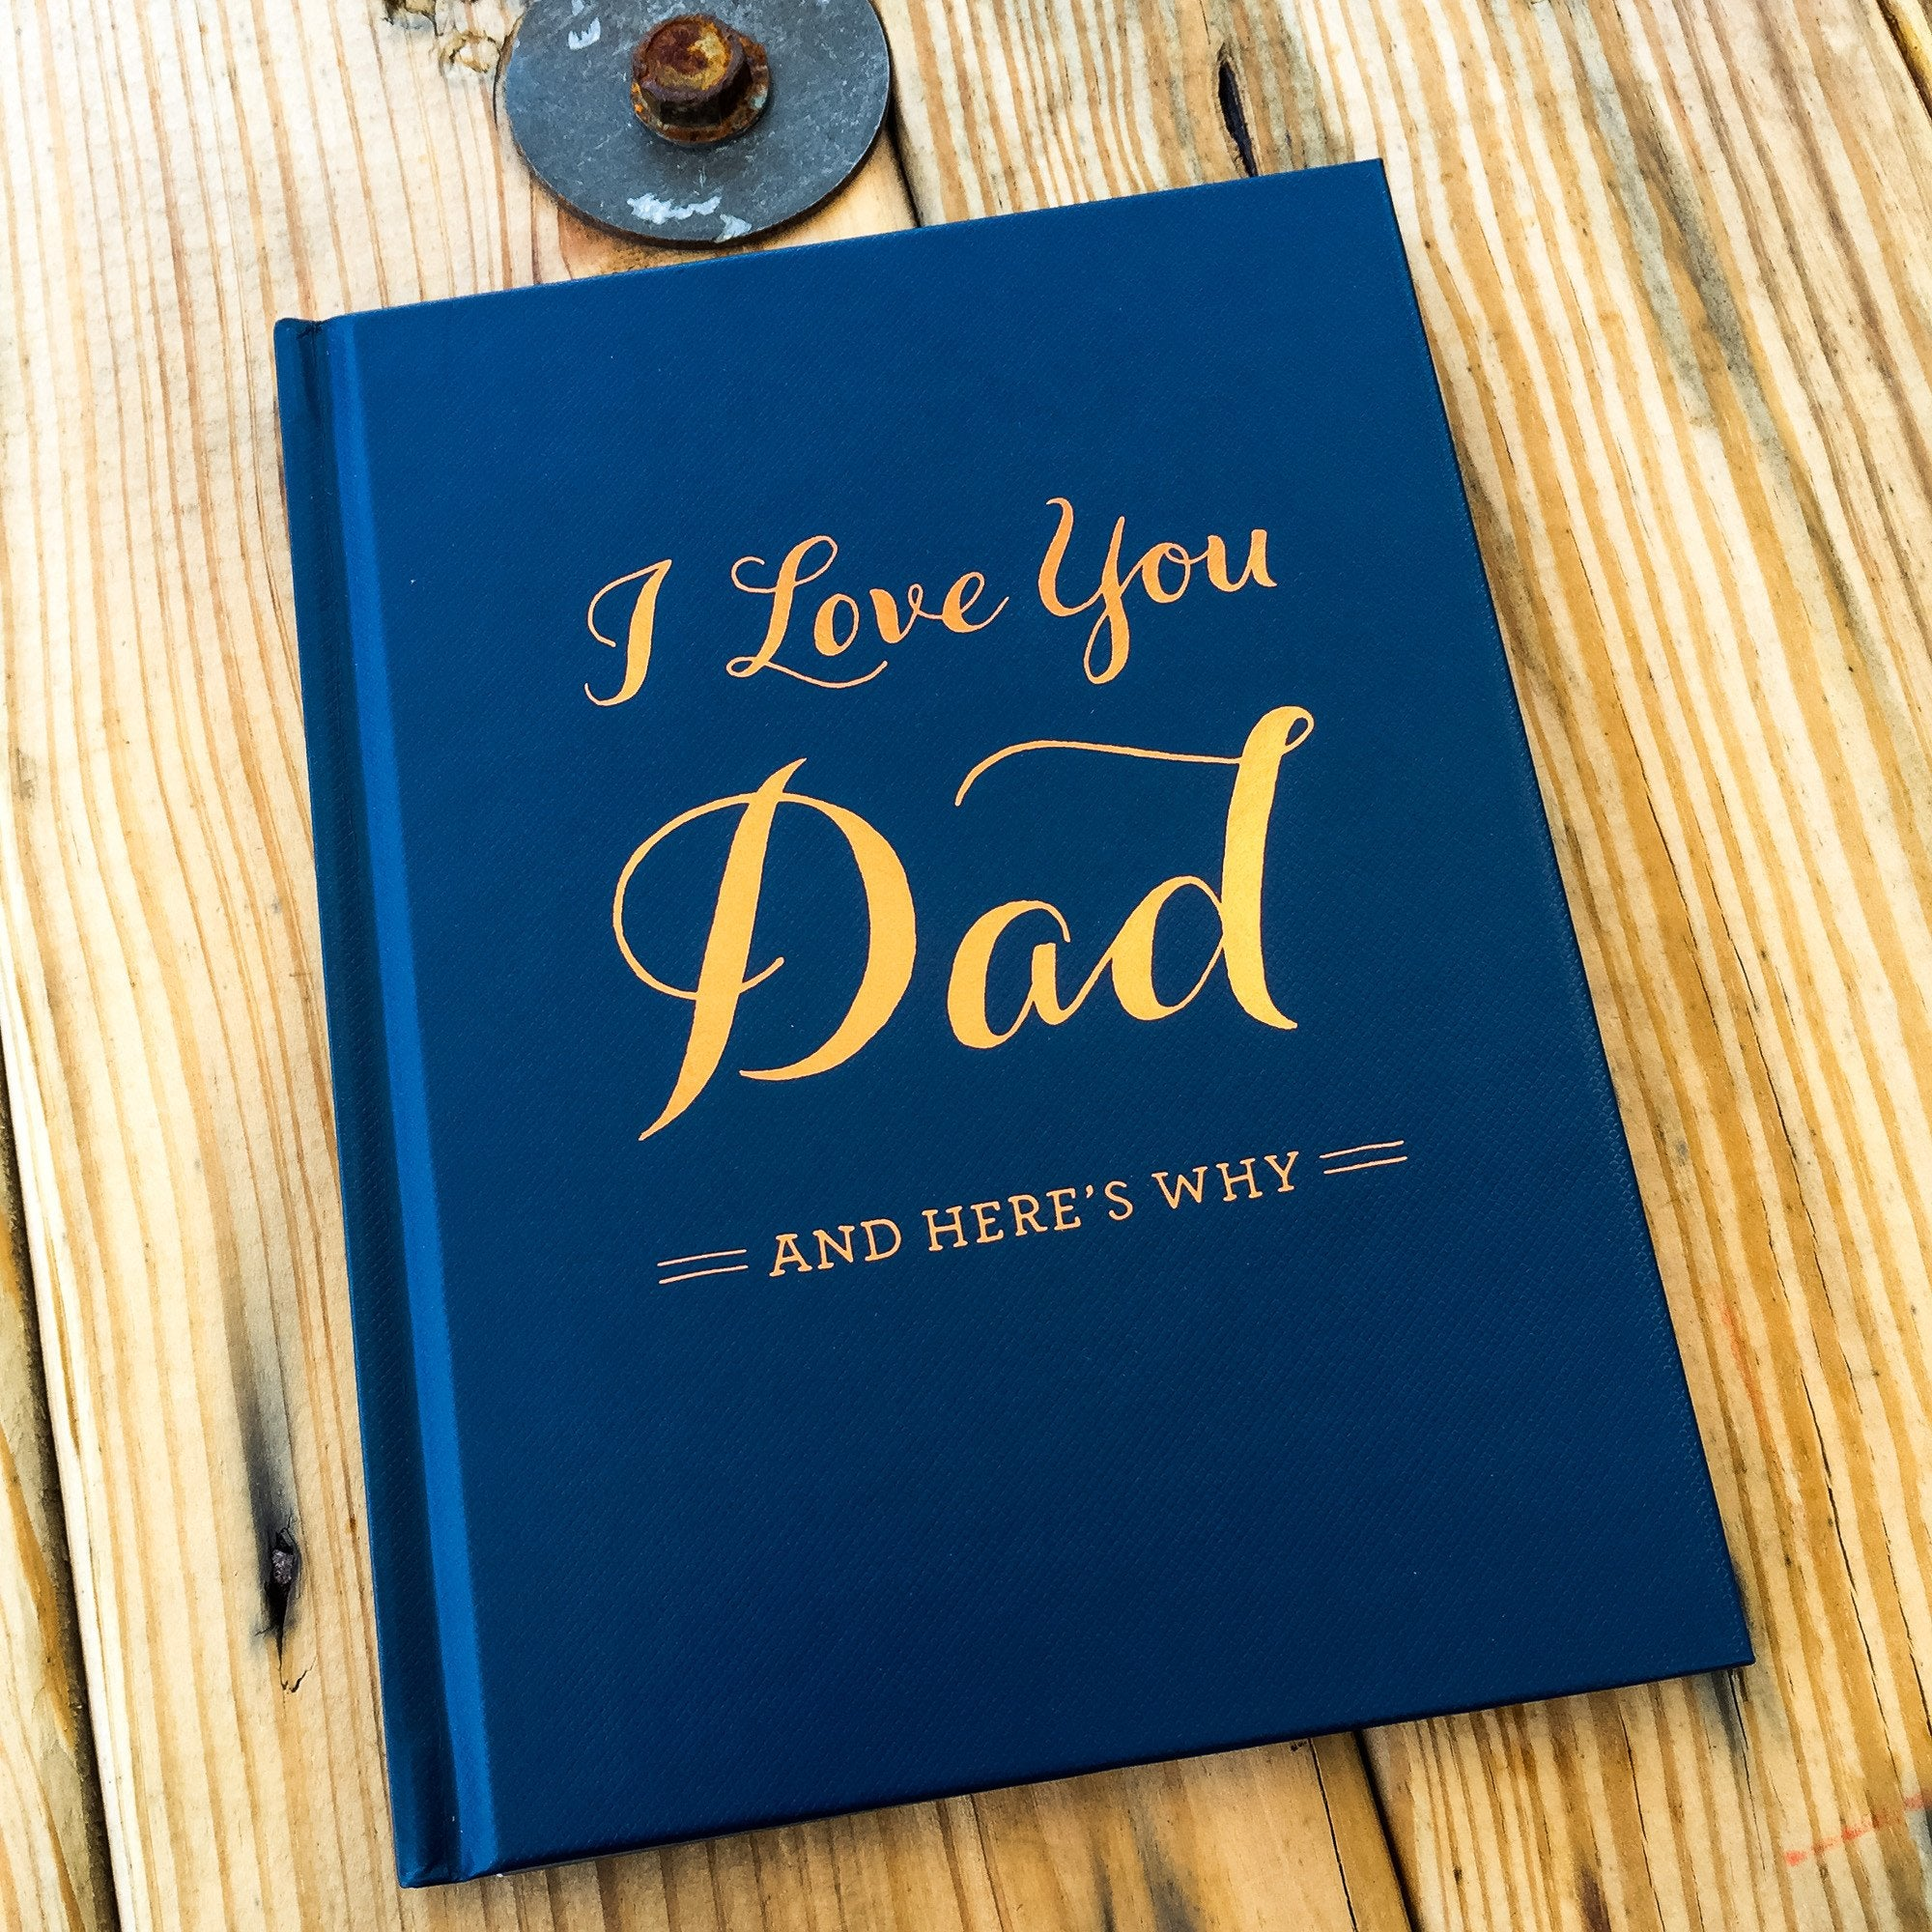 Buy I Love You, Dad Gift Book from Walking Pants Curiosities, the Most un-General Gift Store in Downtown Memphis, Tennessee!